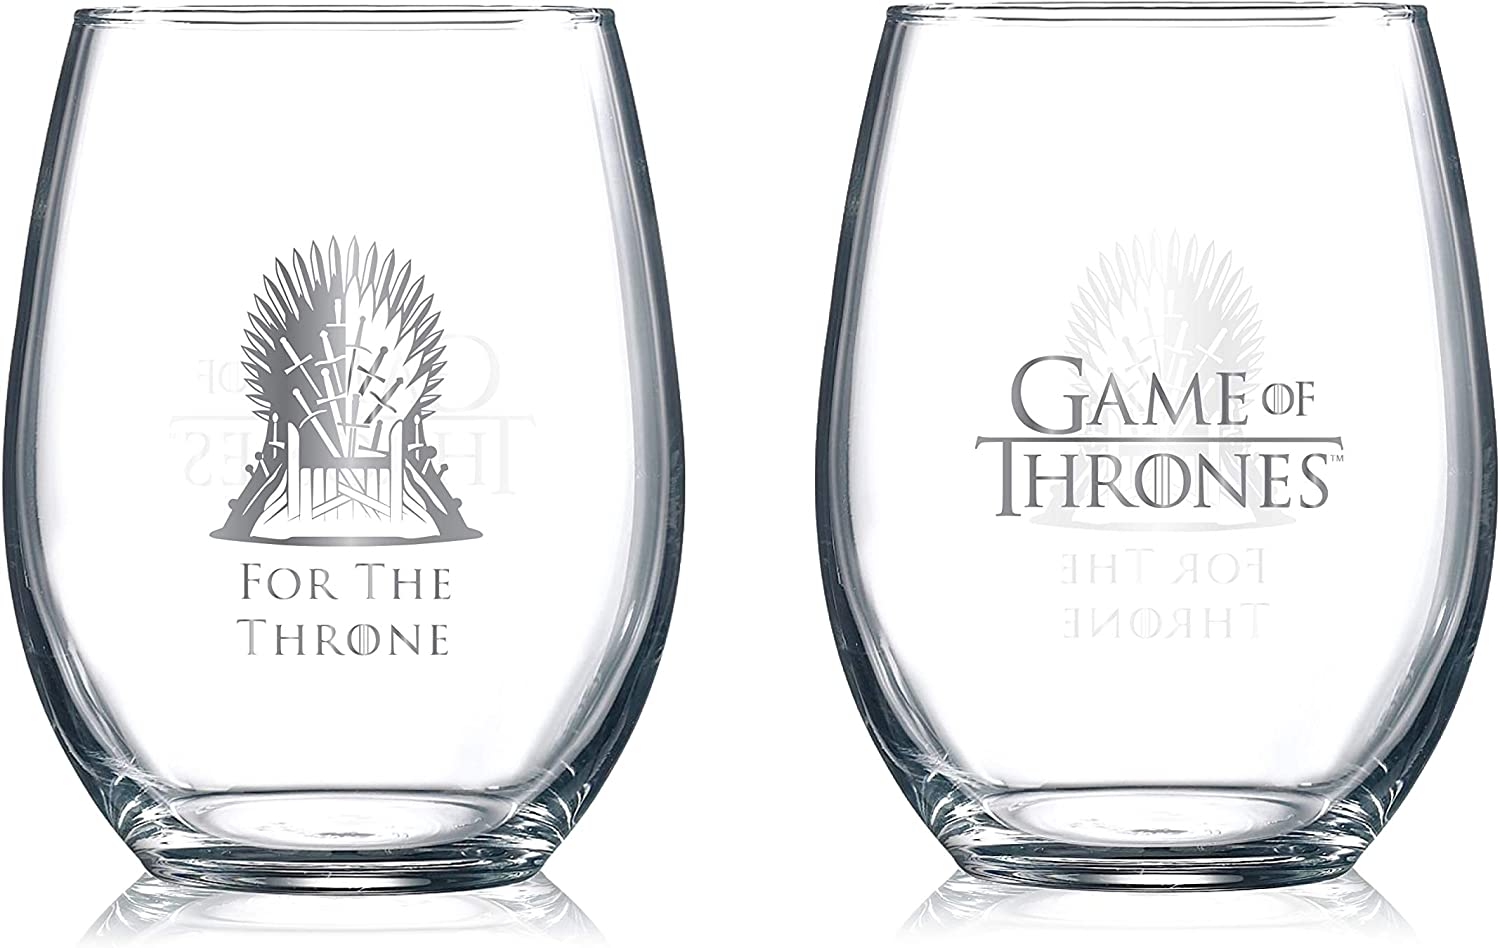 Amazon Com Game Of Thrones Collectible Wine Glasses For The Throne 2 Pack Wine Glasses